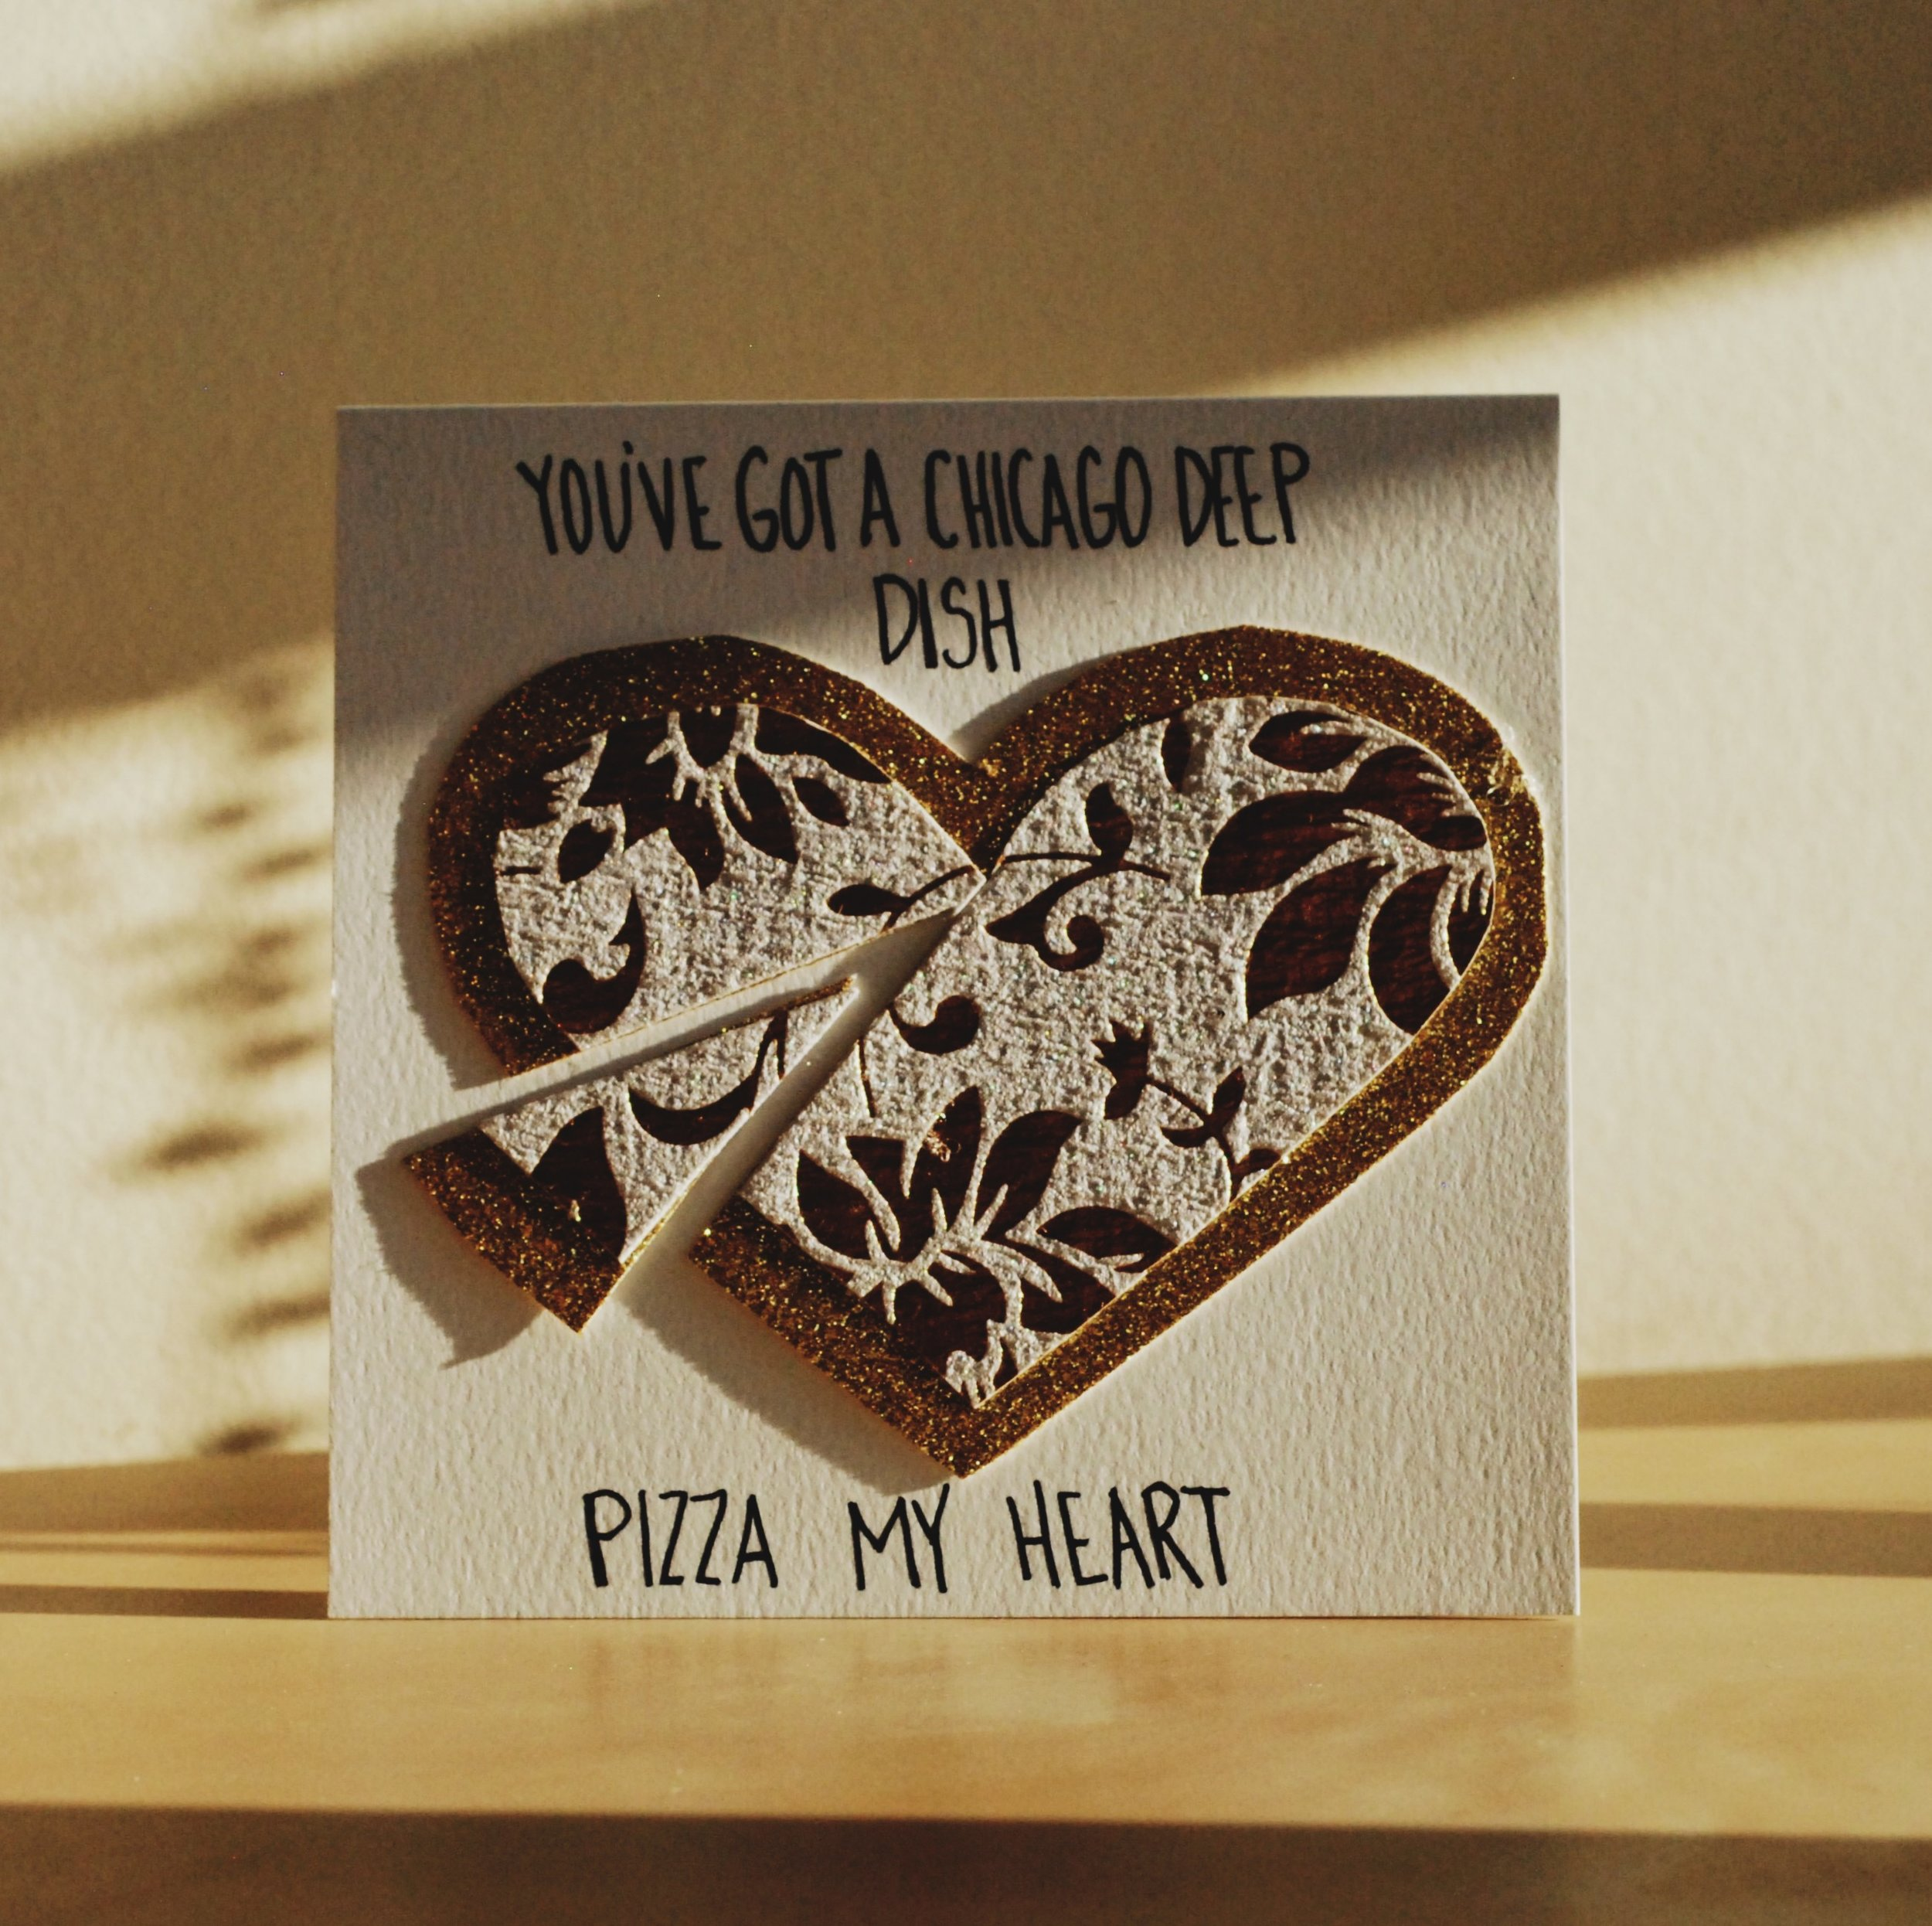 Monthly Mail Club - February 2017 Pizza my heart Valentine